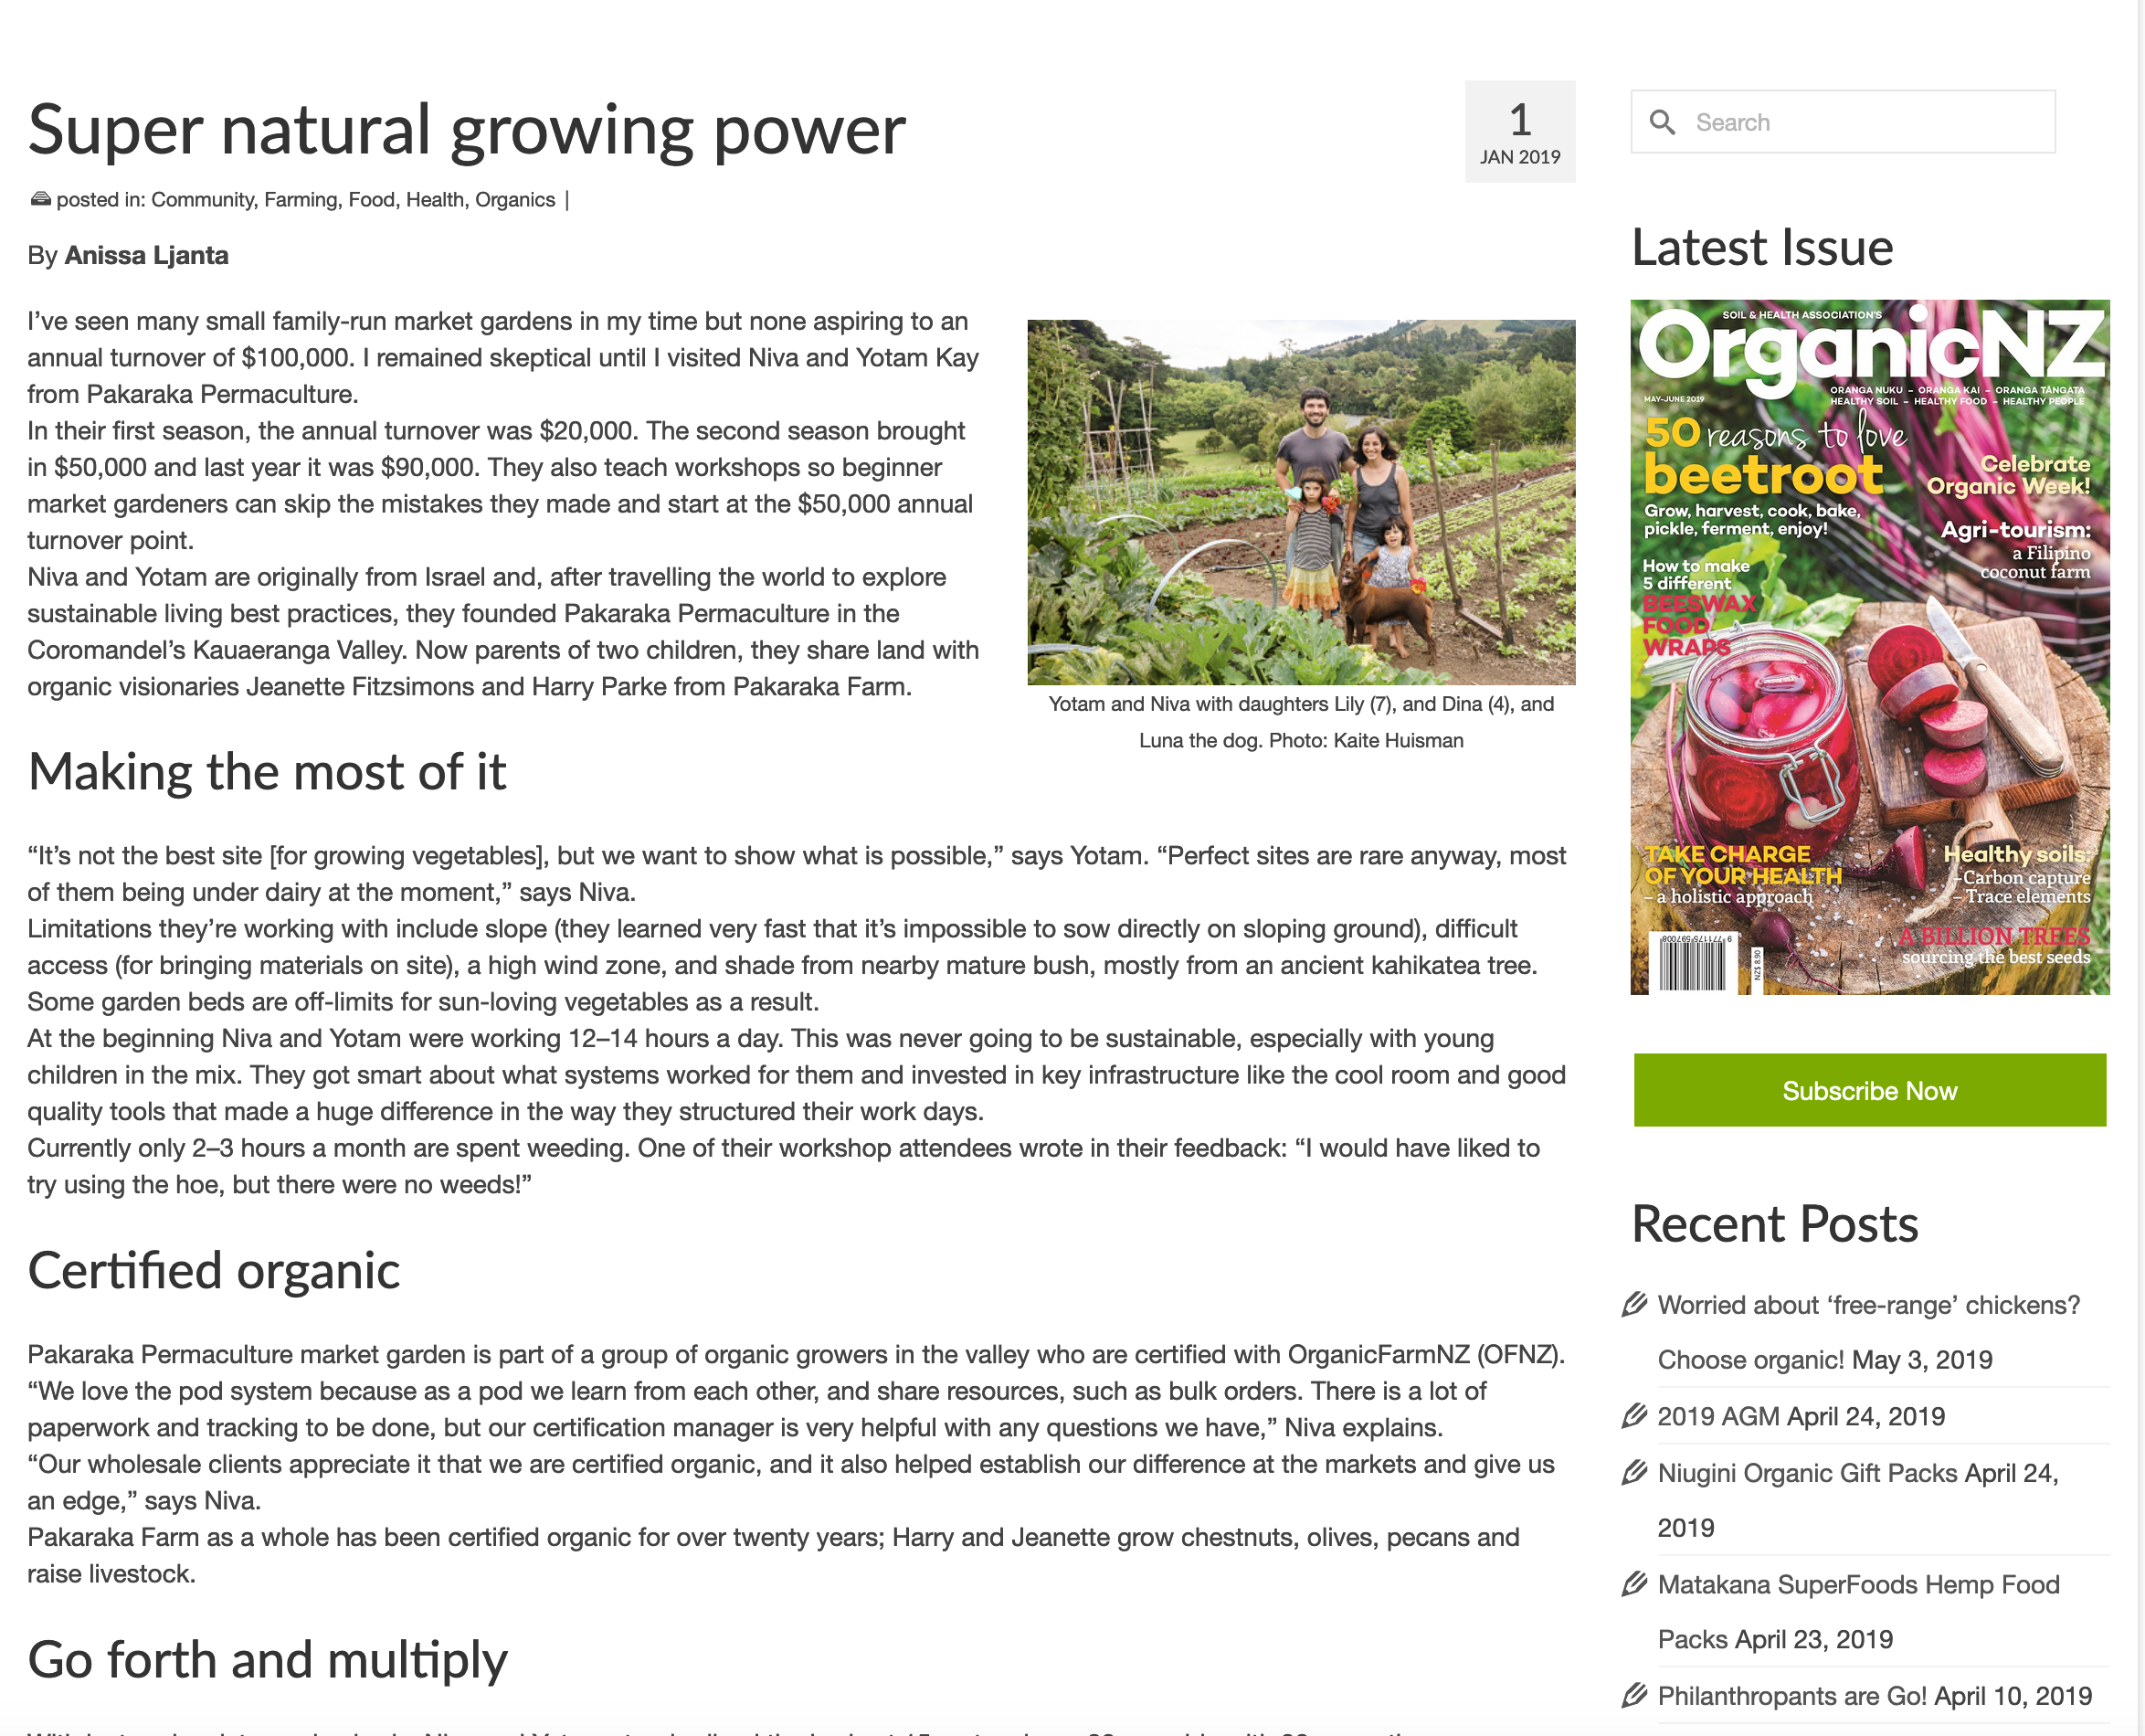 Super natural growing power- Organic NZ article by Anissa LJanta